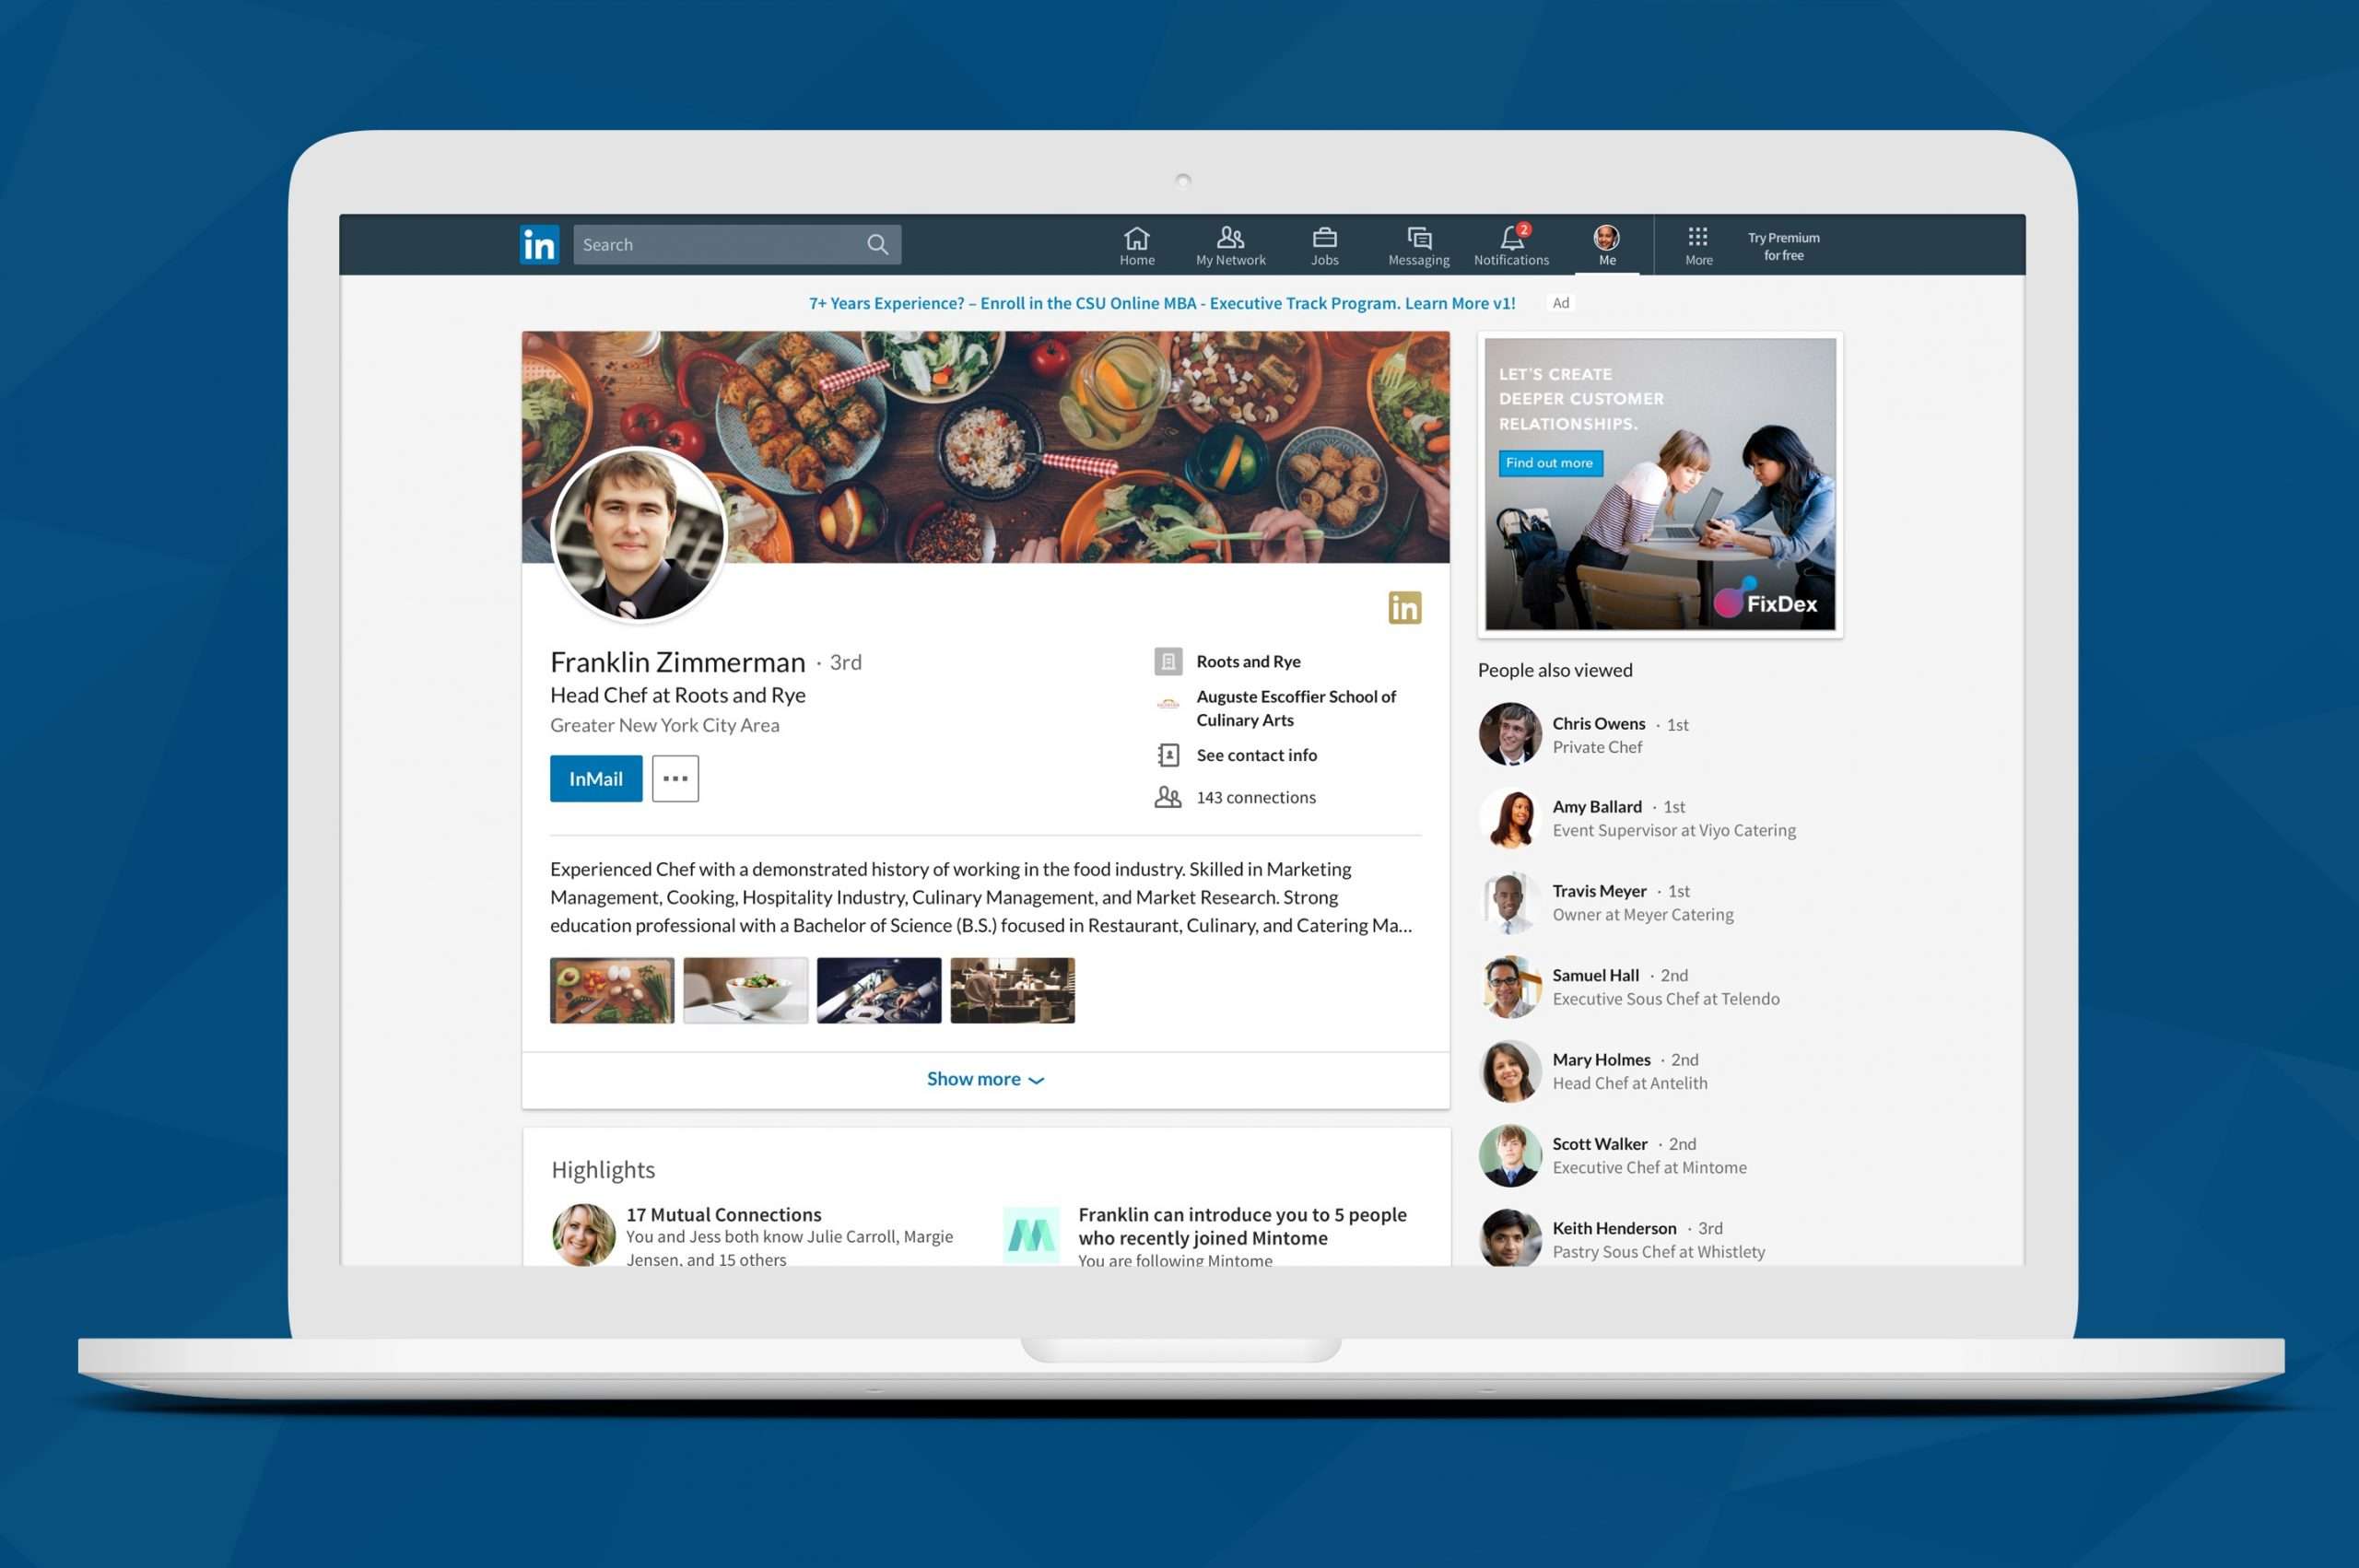 Sync your LinkedIn profile with your resume